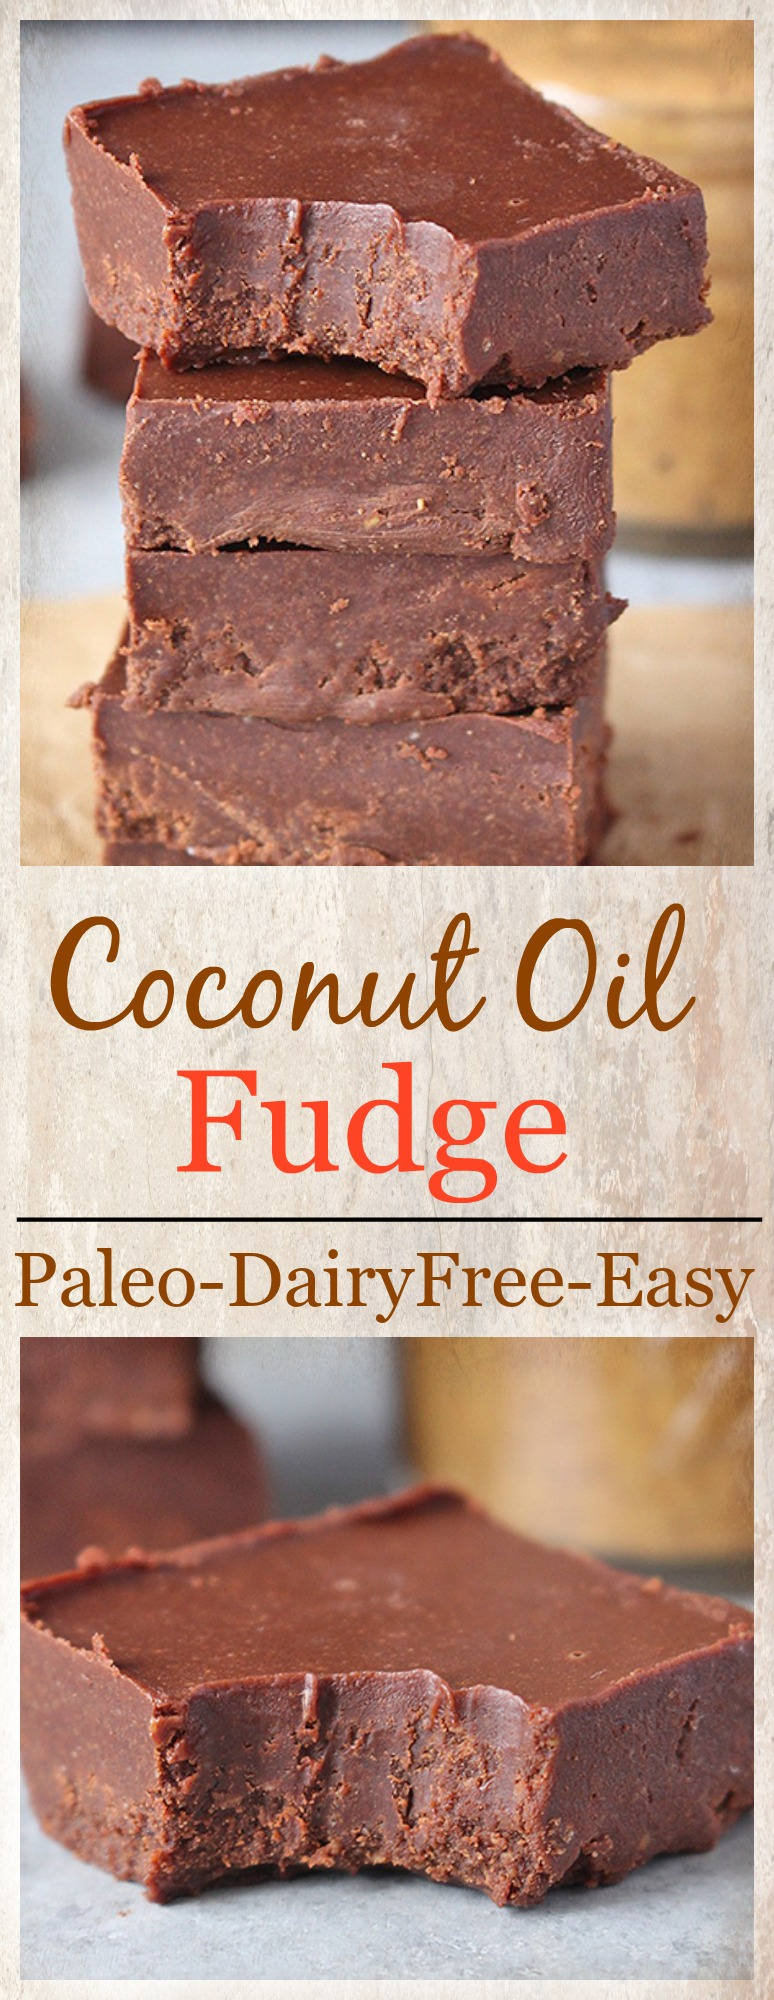 Paleo Coconut Oil Fudge